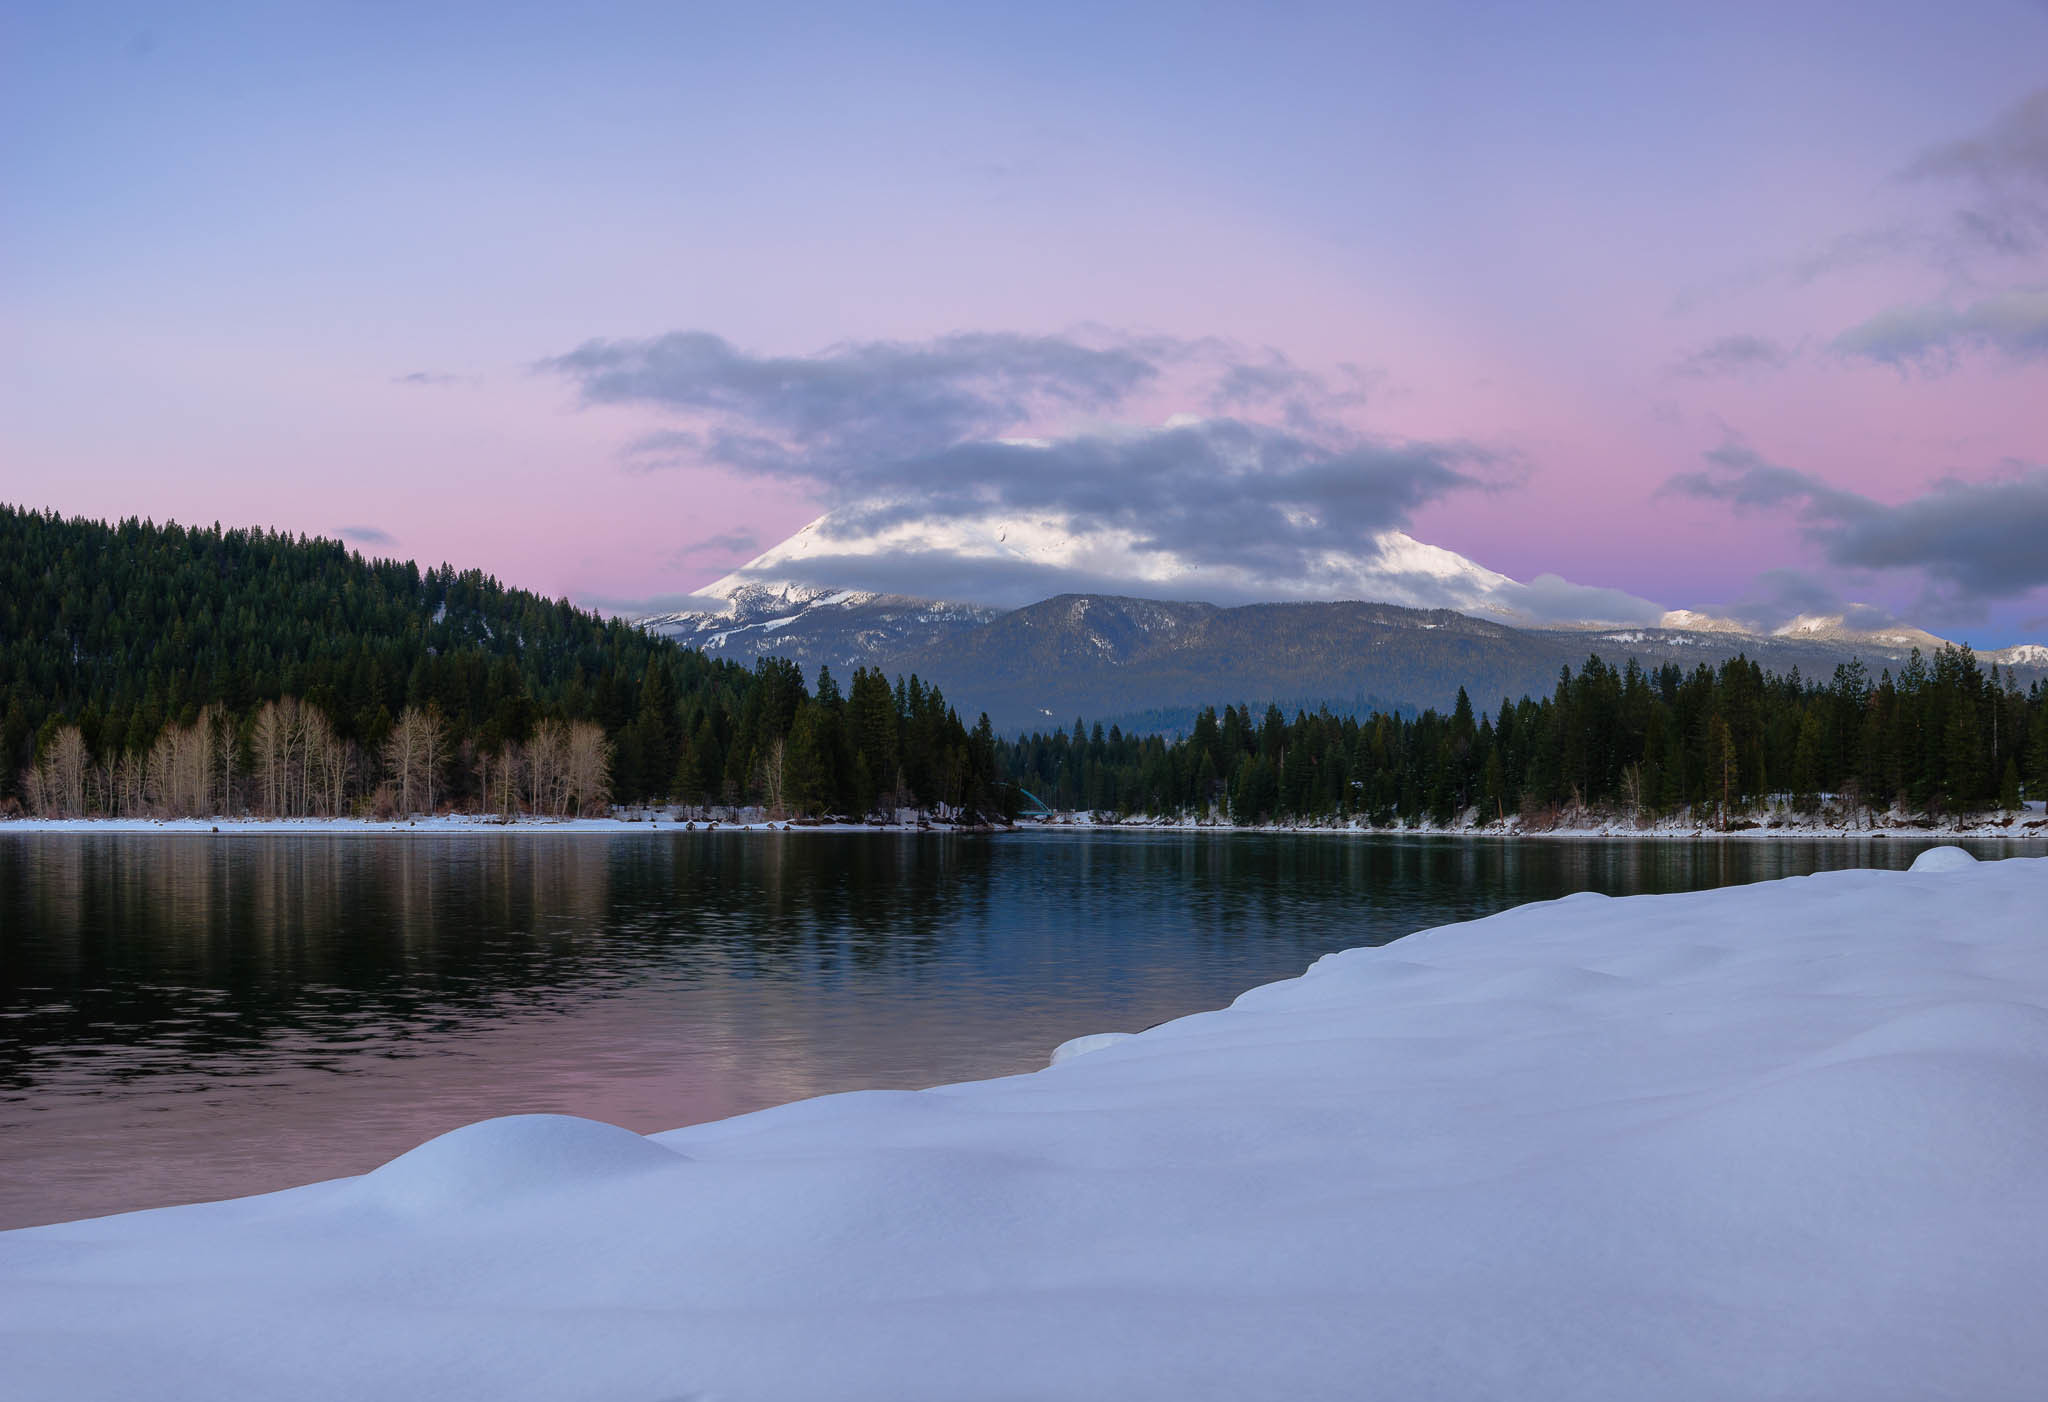 Photograph Peek-a-Boo (Mount Shasta) by Eric Leslie on 500px